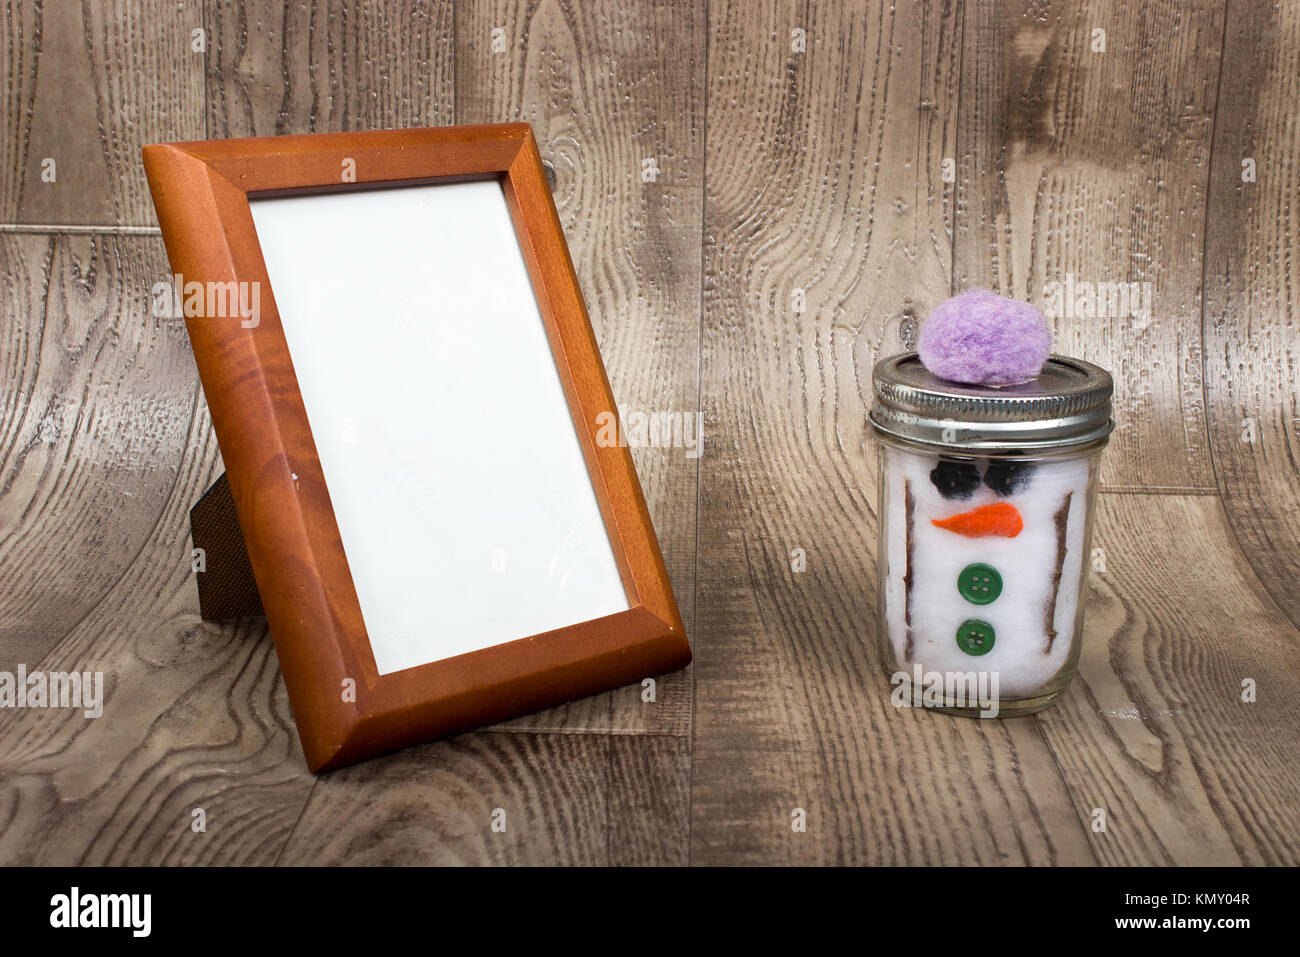 background of empty wooden  picture frame setting a wooden shelf with a hand crafted snowman made with twigs, buttons, - Stock Image